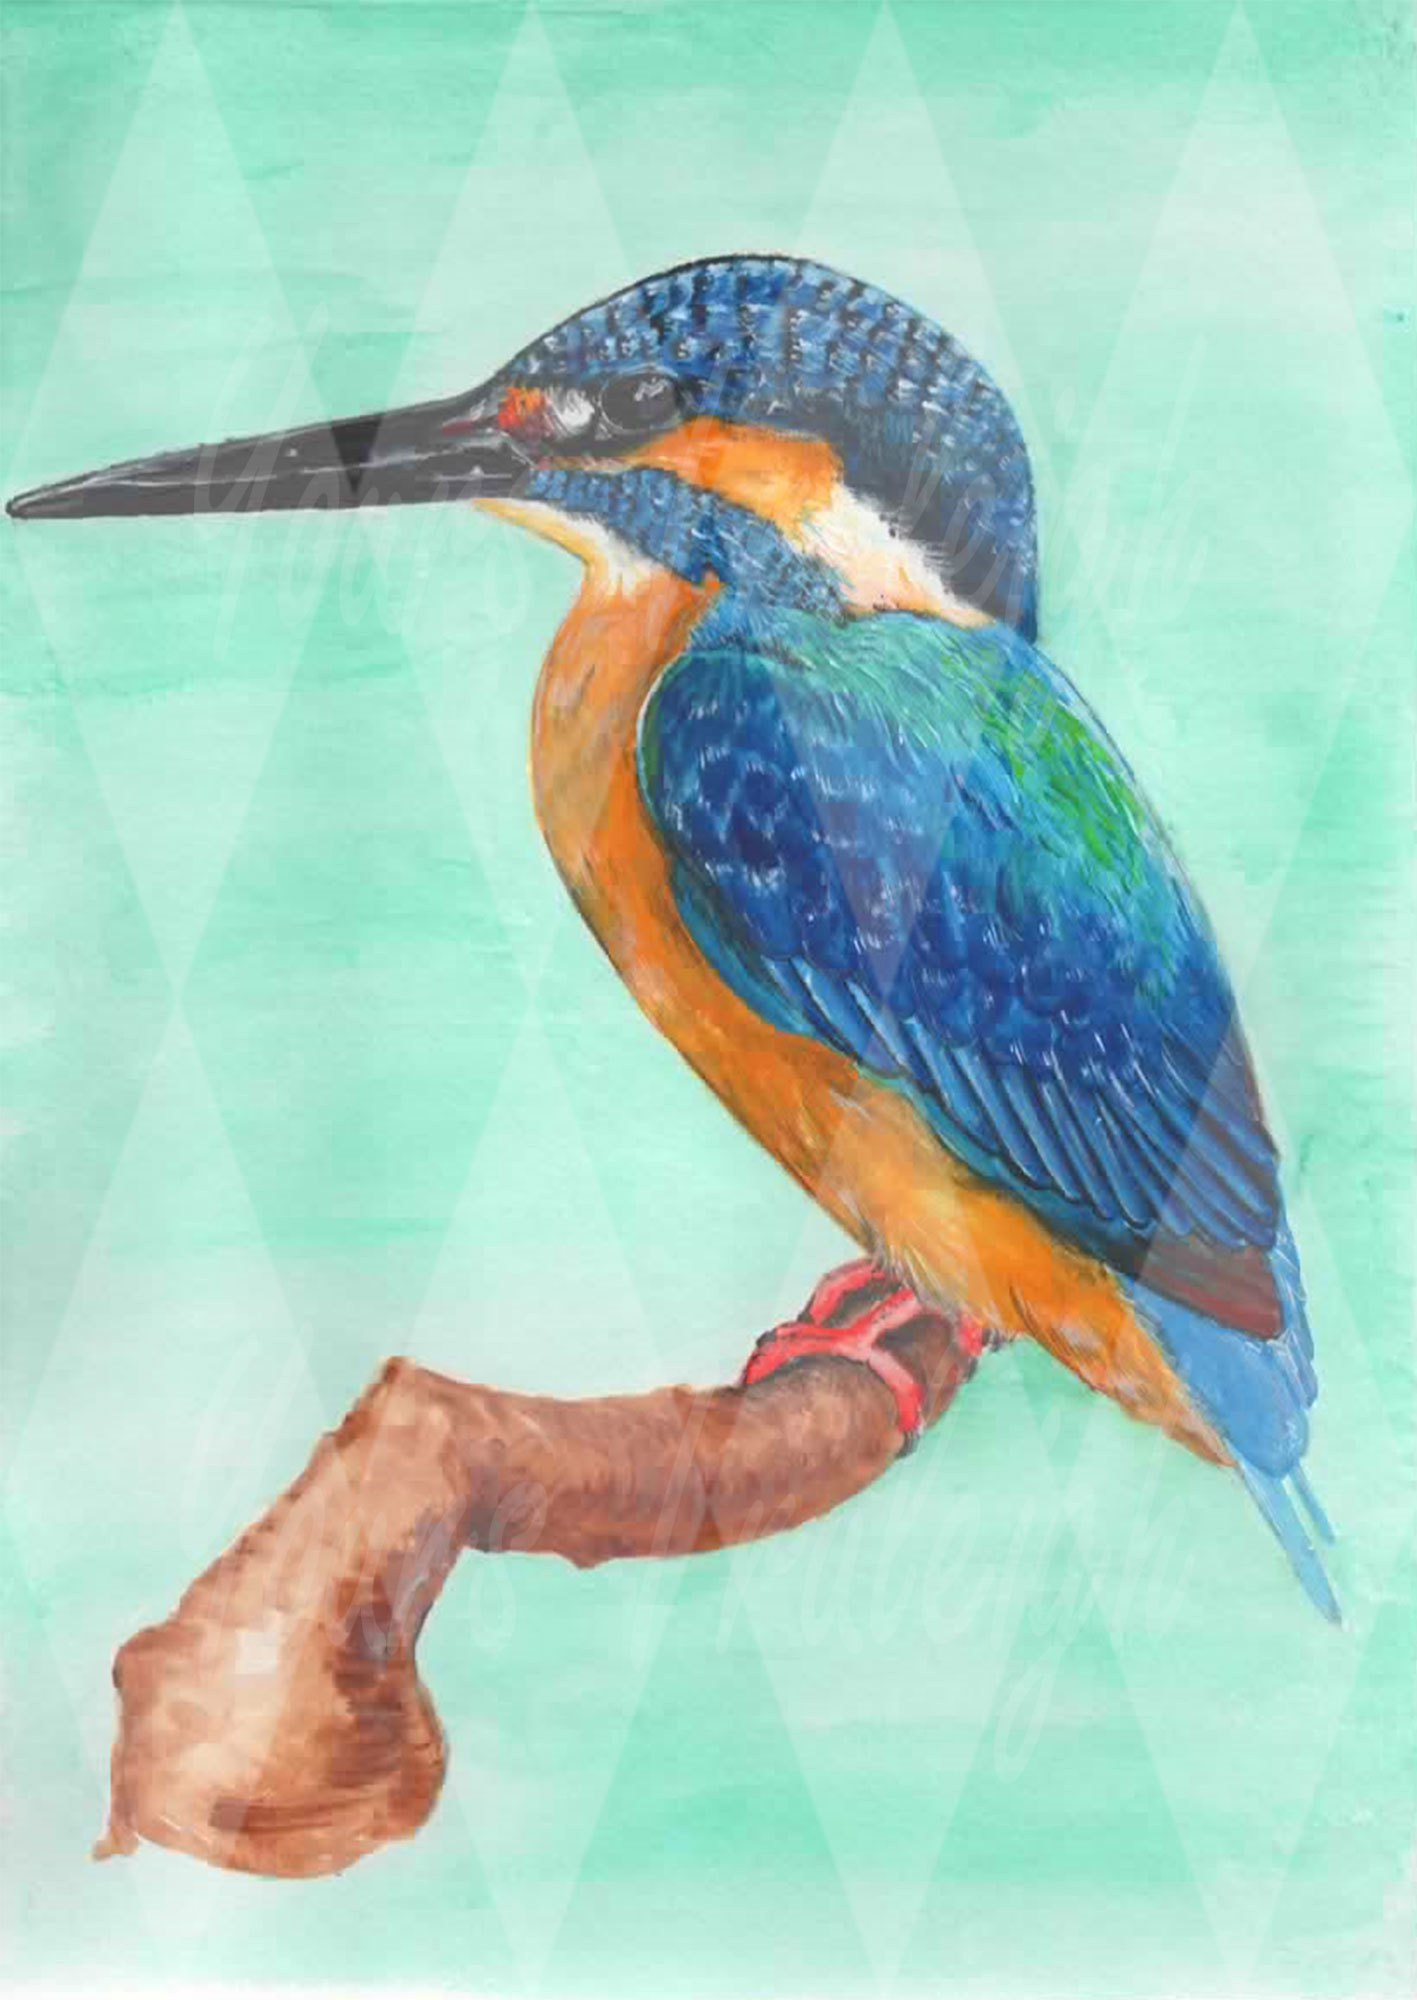 The common Kingfisher - Personal Use License